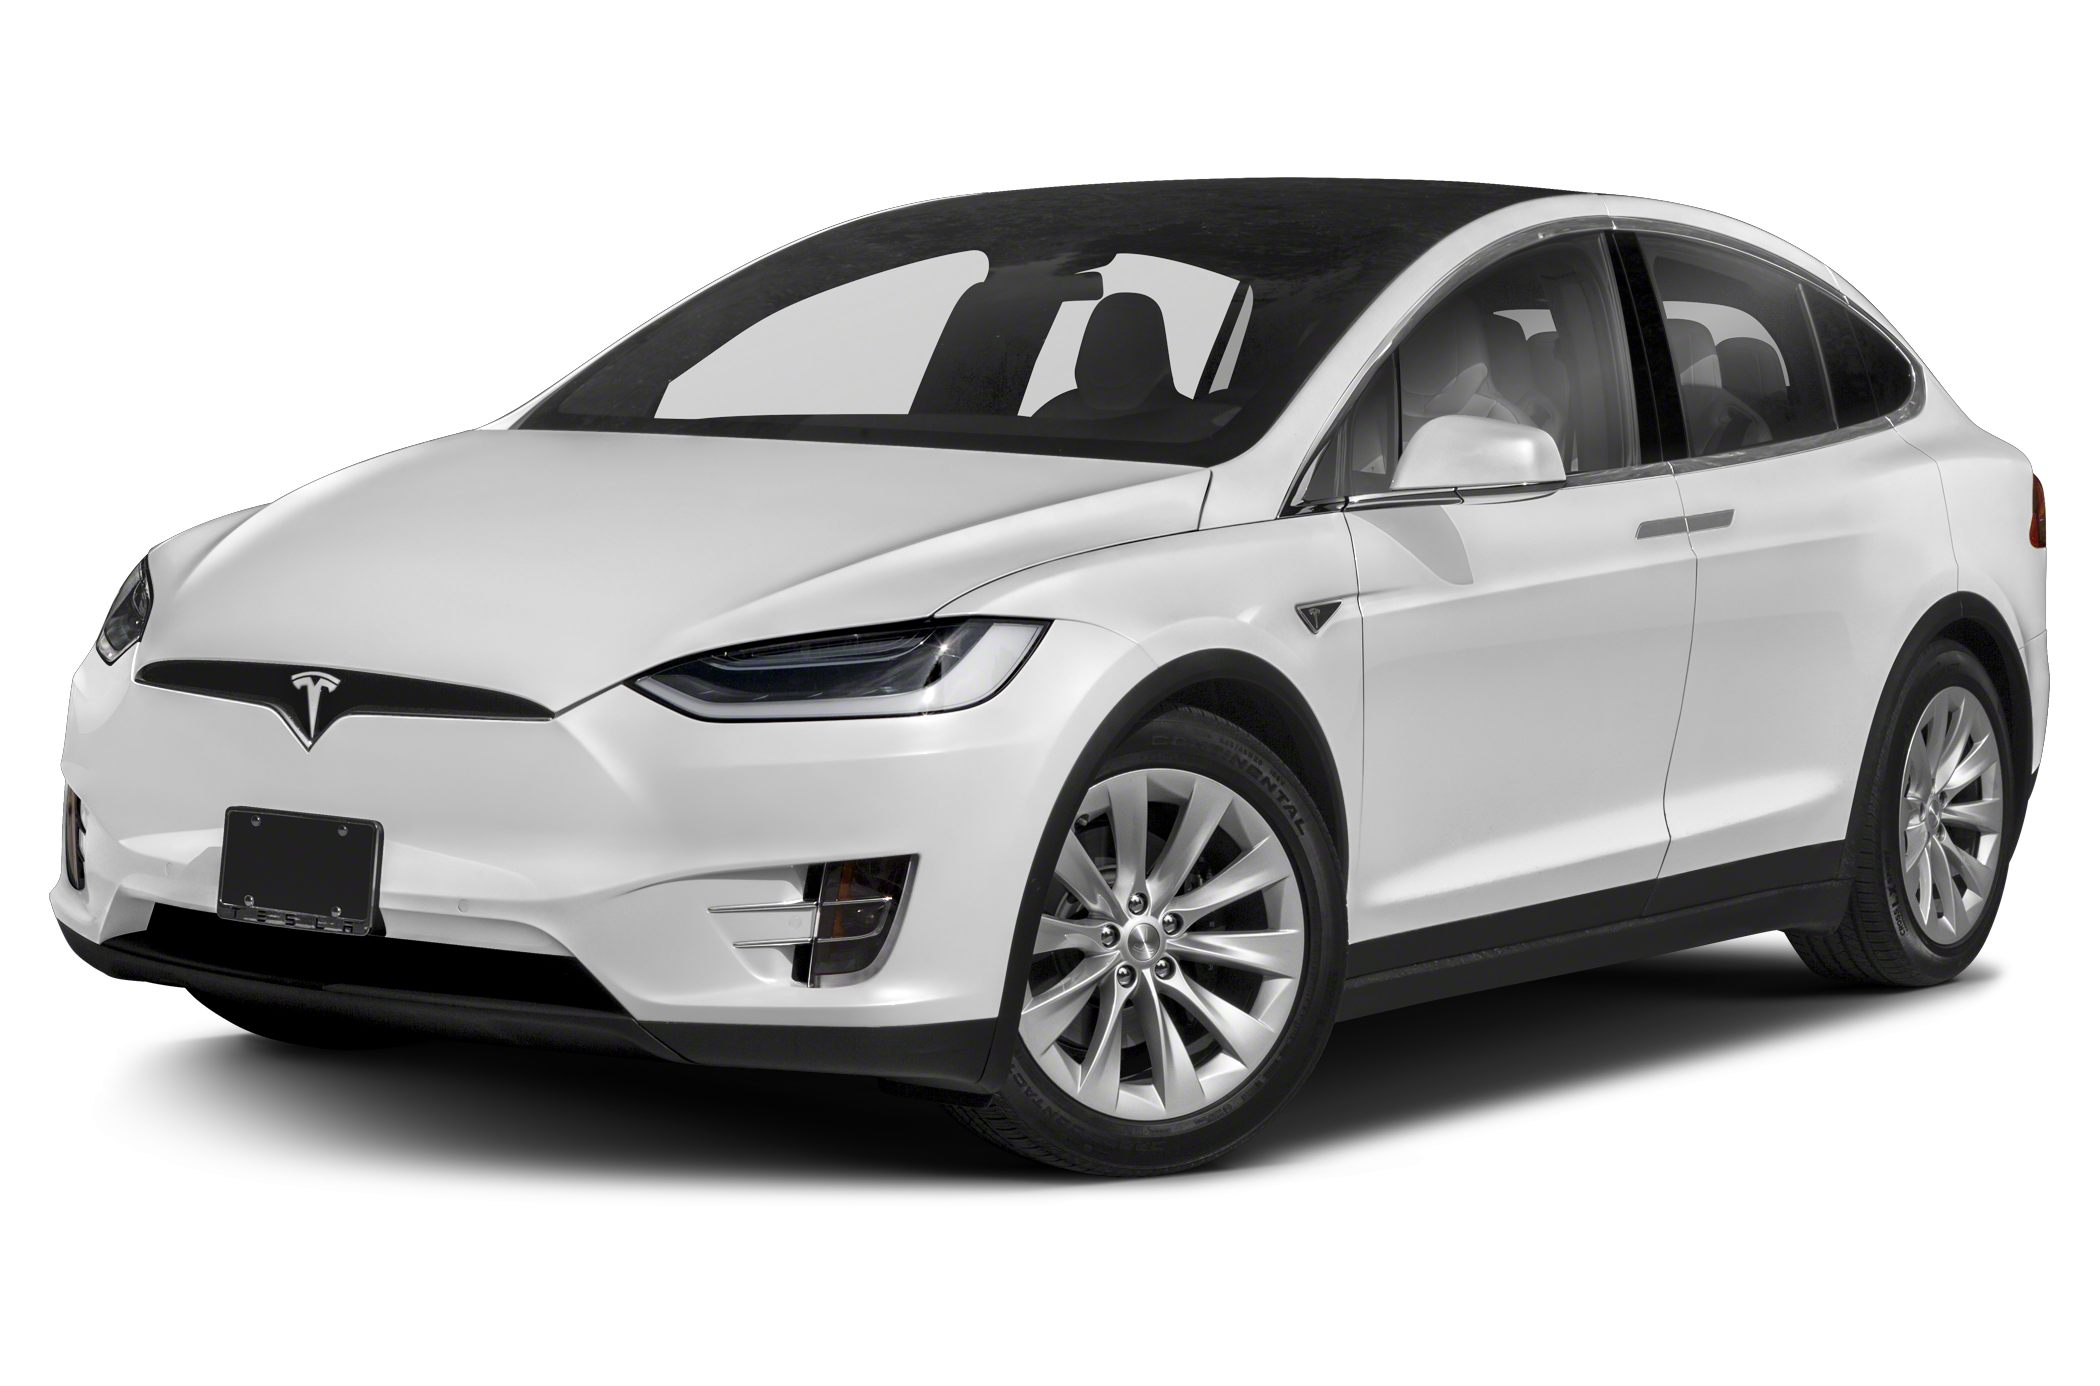 most expensive tesla model x configuration costs 150 000 autoblog. Black Bedroom Furniture Sets. Home Design Ideas